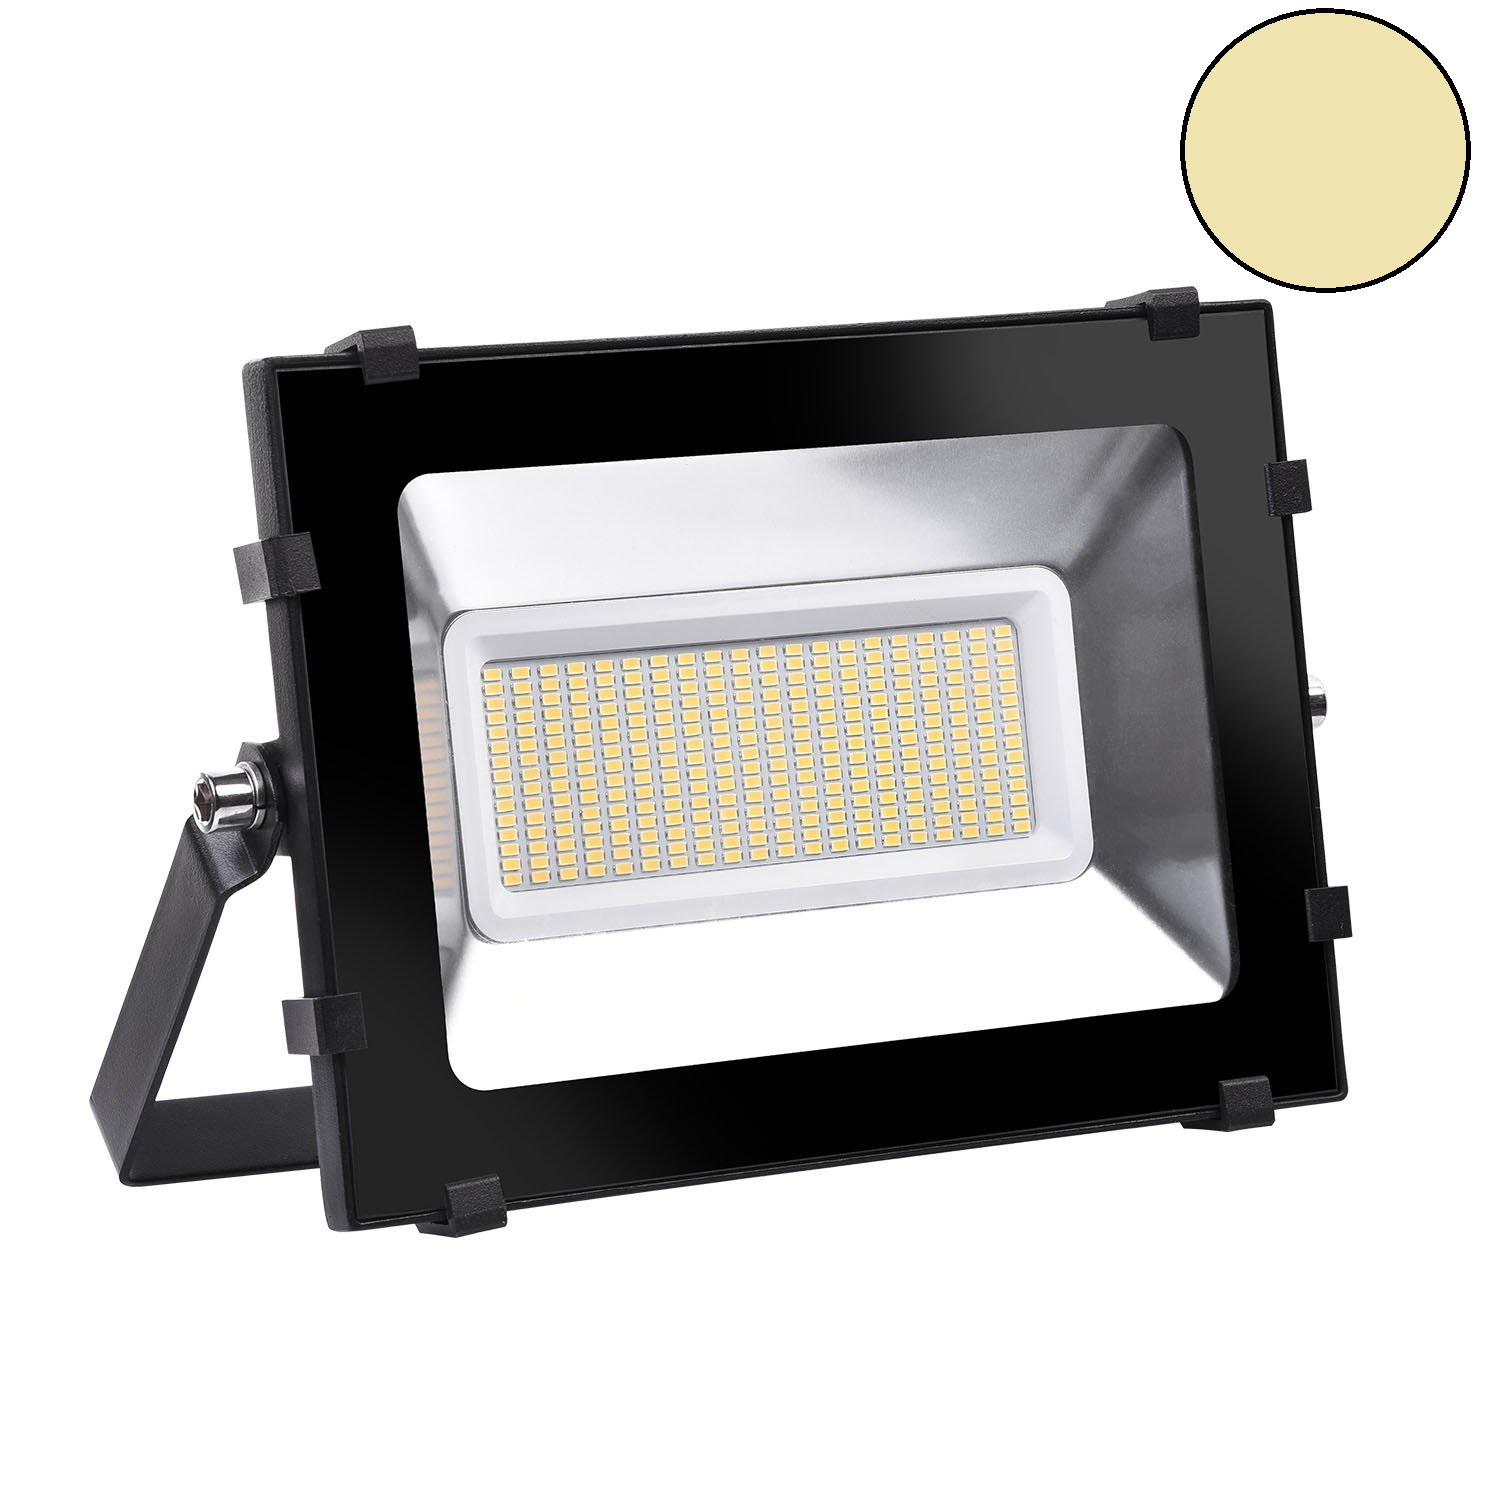 Floodlight LED 150 watt warm wit huren